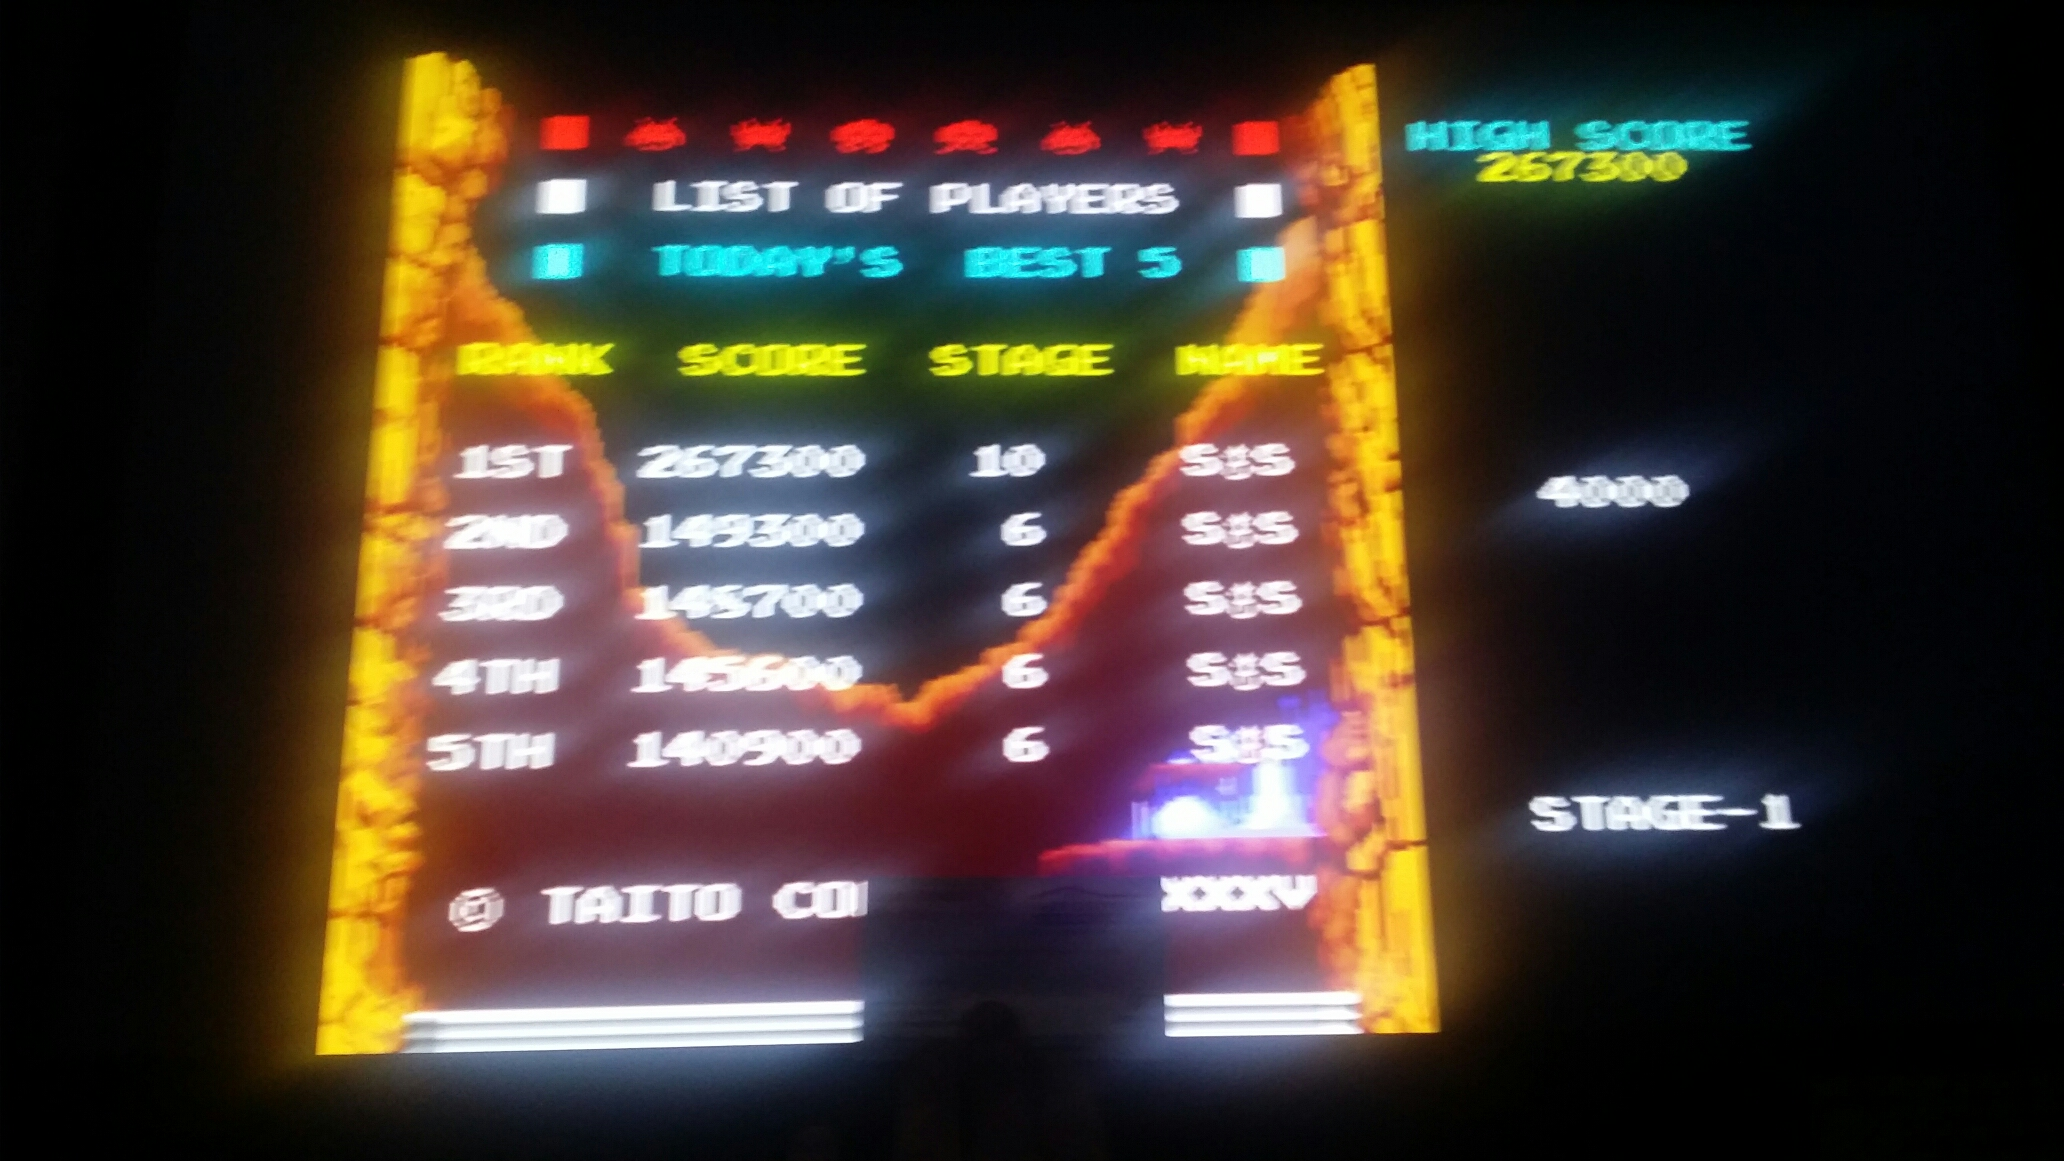 SeanStewart: Return of the Invaders [retofinv] (Arcade Emulated / M.A.M.E.) 267,300 points on 2017-12-20 21:09:14